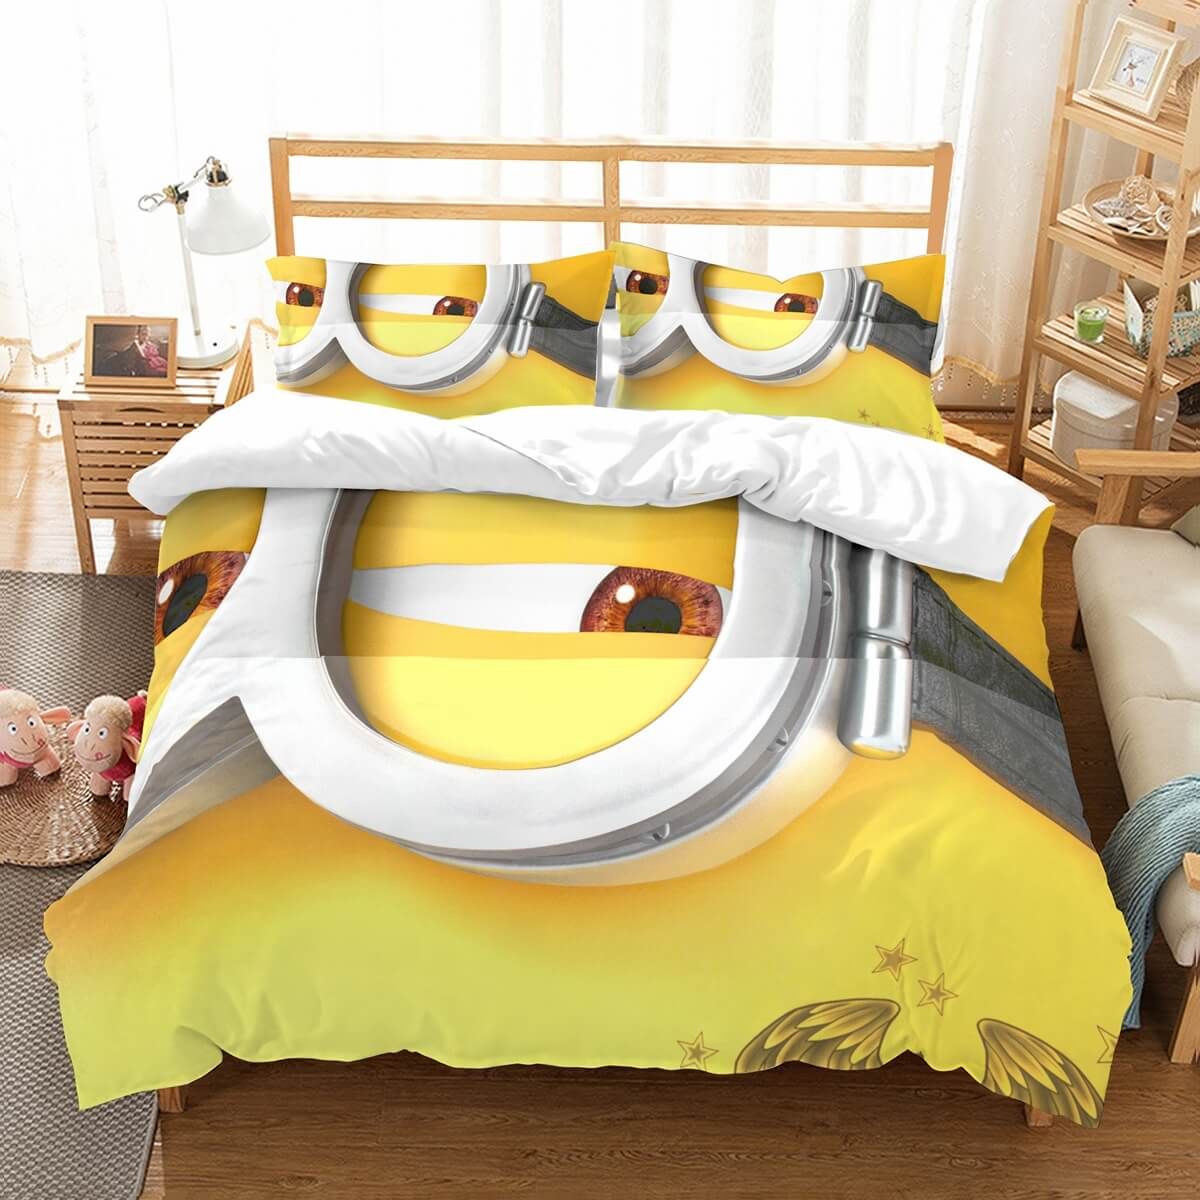 3D Customize Despicable Me 3 Bedding Set Duvet Cover Set Bedroom Set Bedlinen